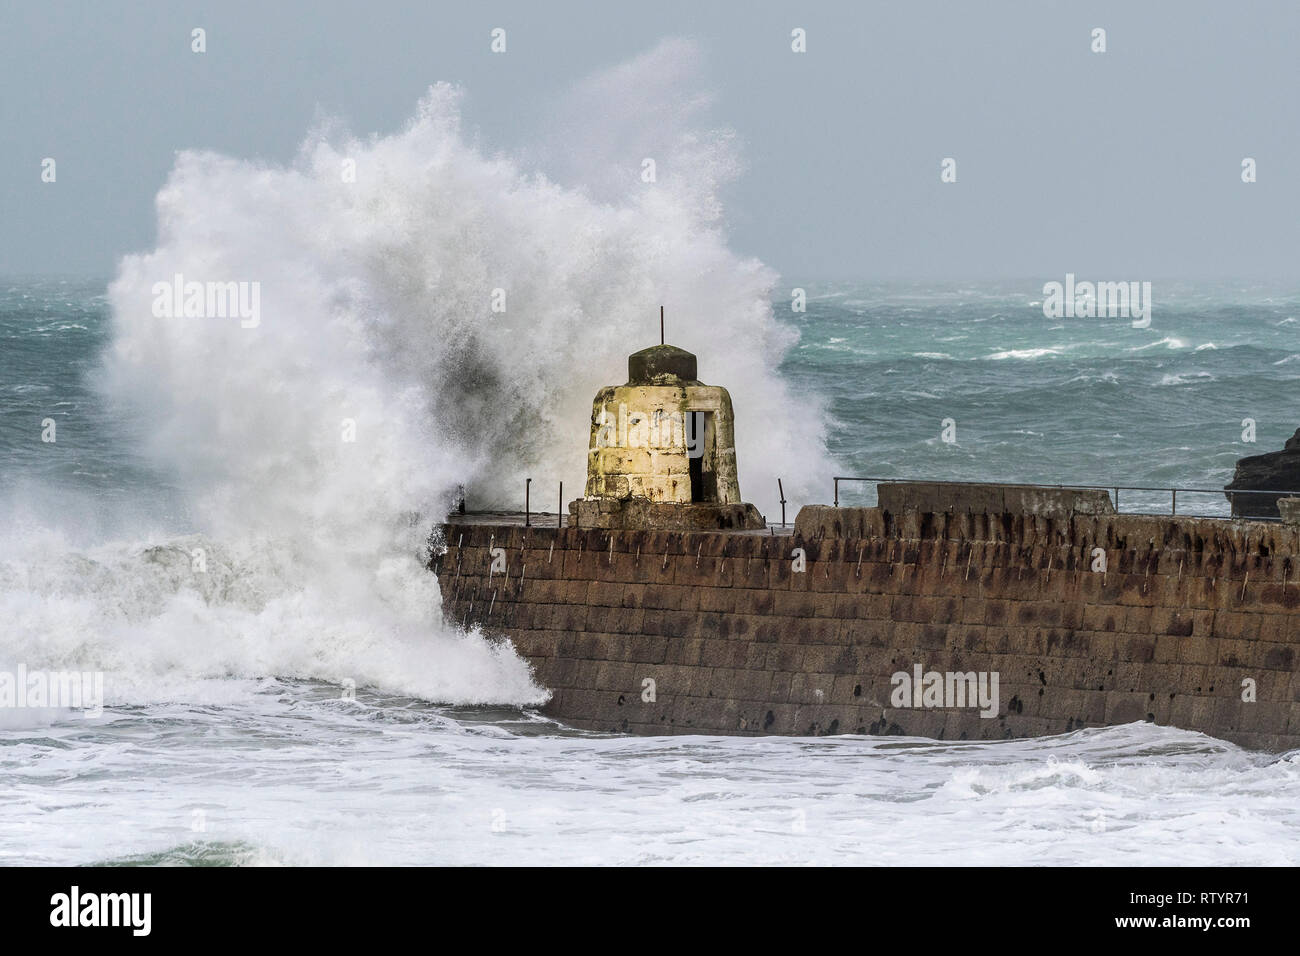 Portreath, Cornwall, UK. 3rd March, 2019.  Storm Freya swept into the Cornish coast.  The historic Monkey Hut on the pier at Portreath bravely withstood the high seas, driving wind and damaging waves.  Gordon Scammell/Alamy Live News. - Stock Image